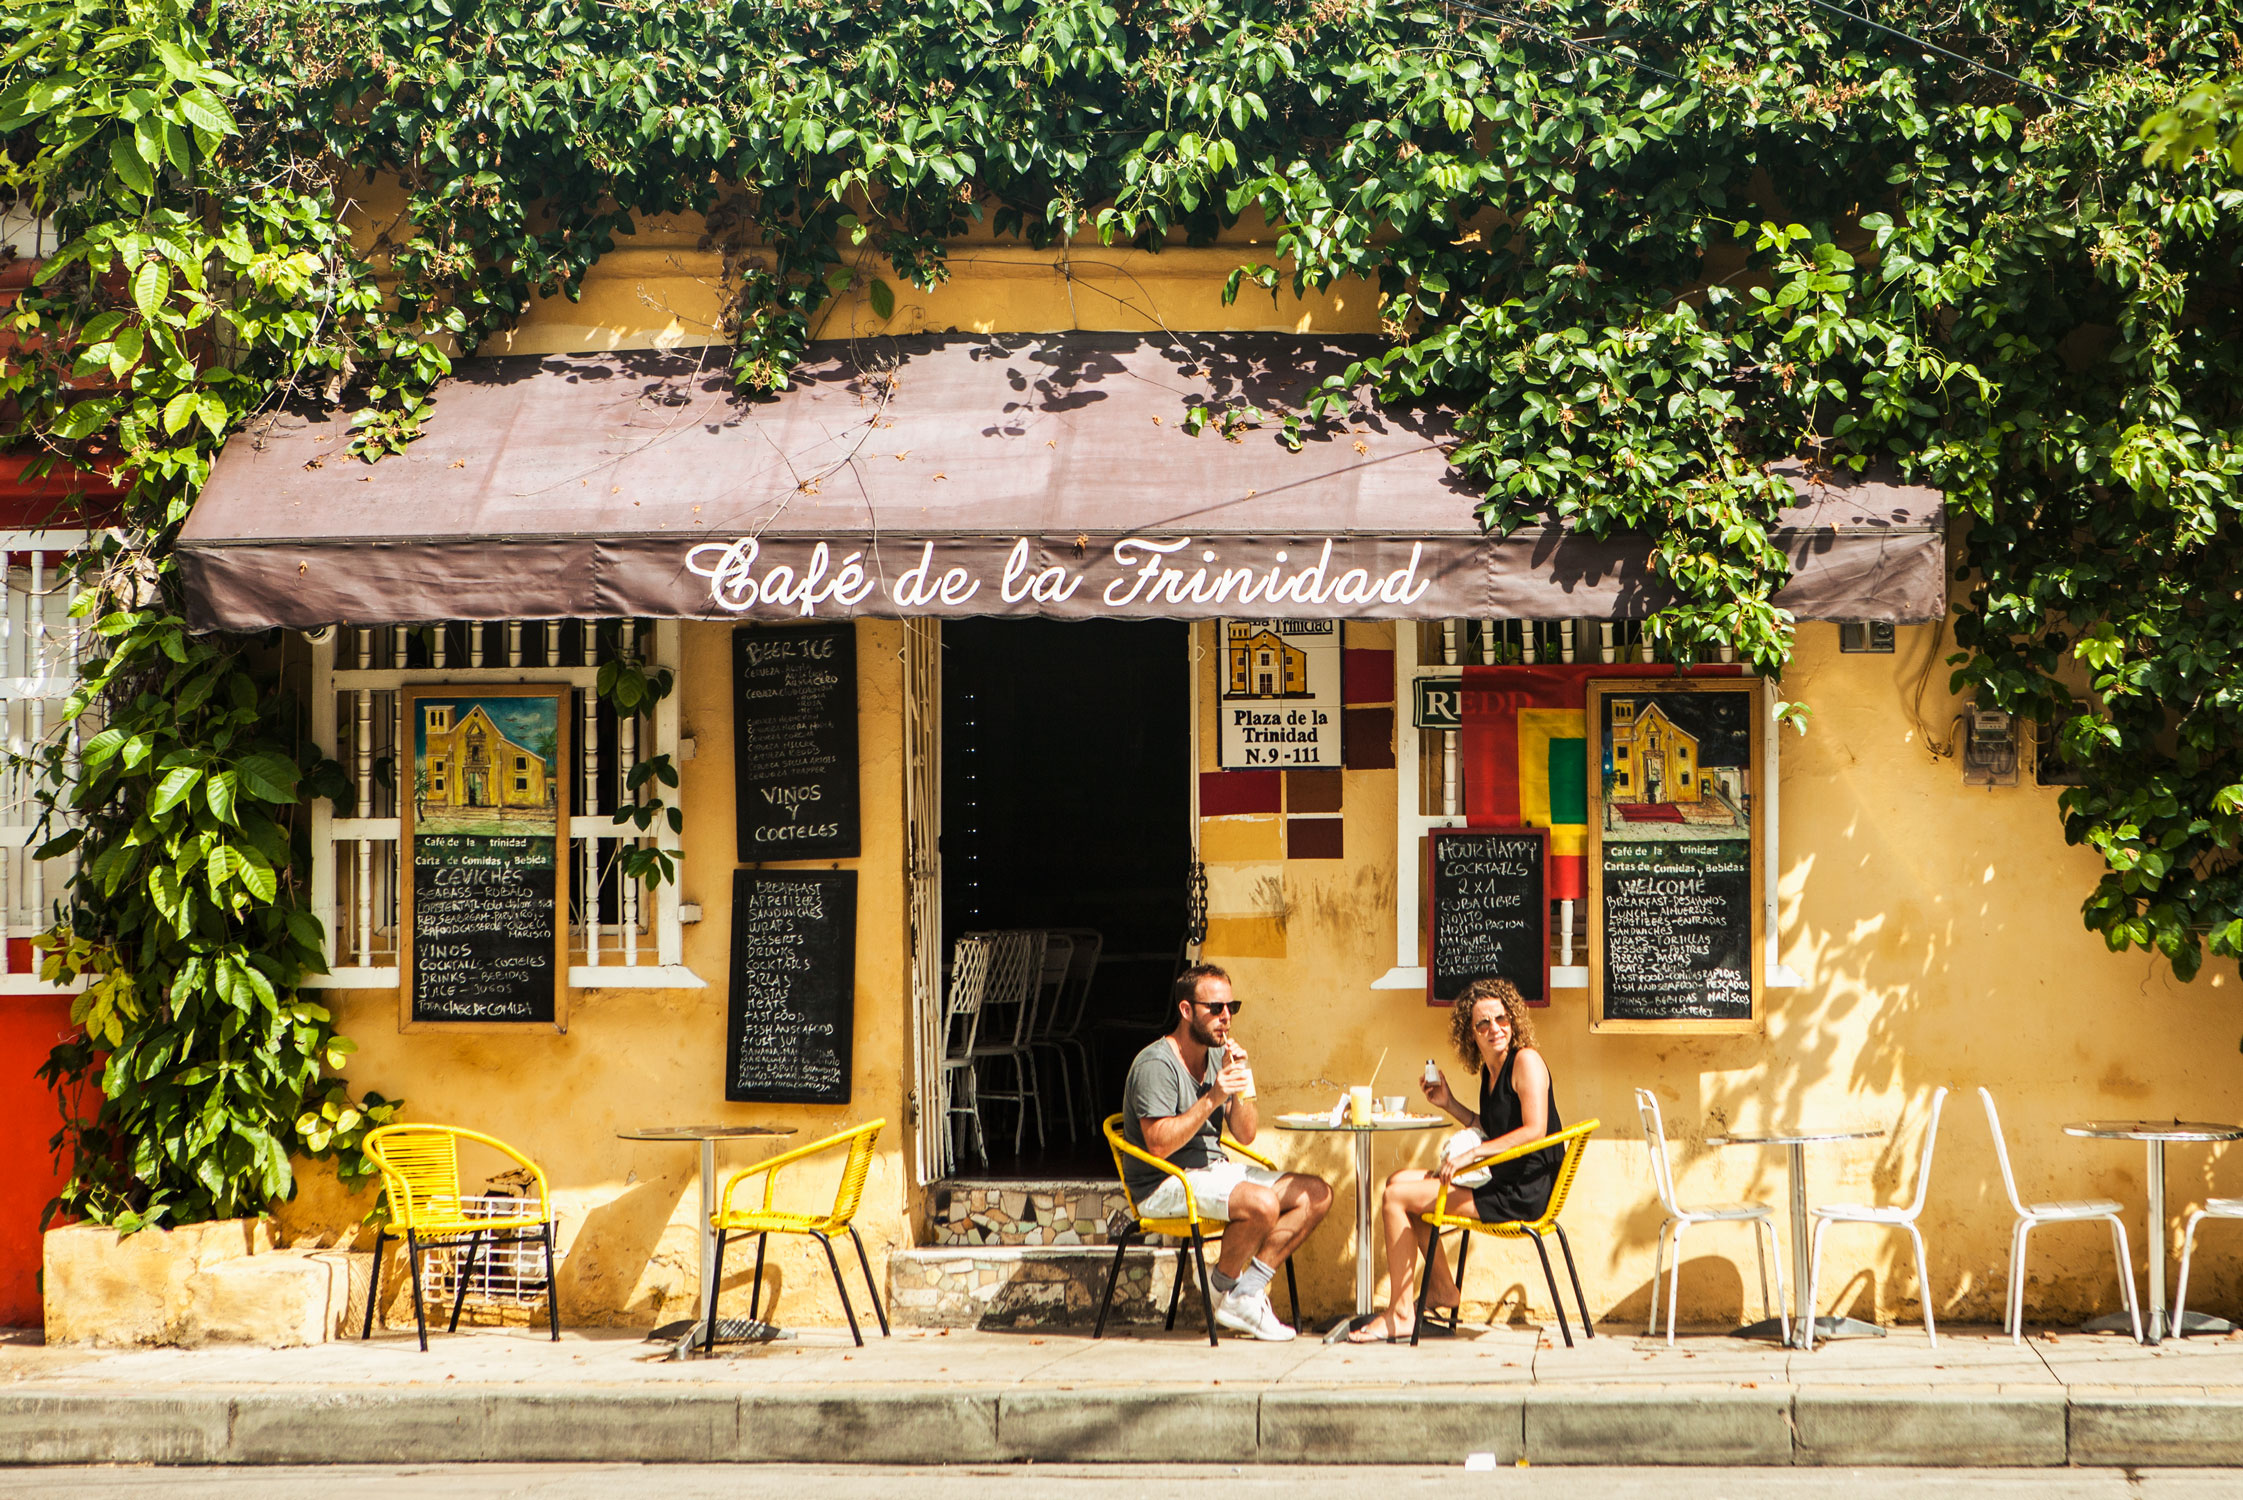 cartagena-colombia-wander-south-getsemani-4-cafe-trinidad.jpg